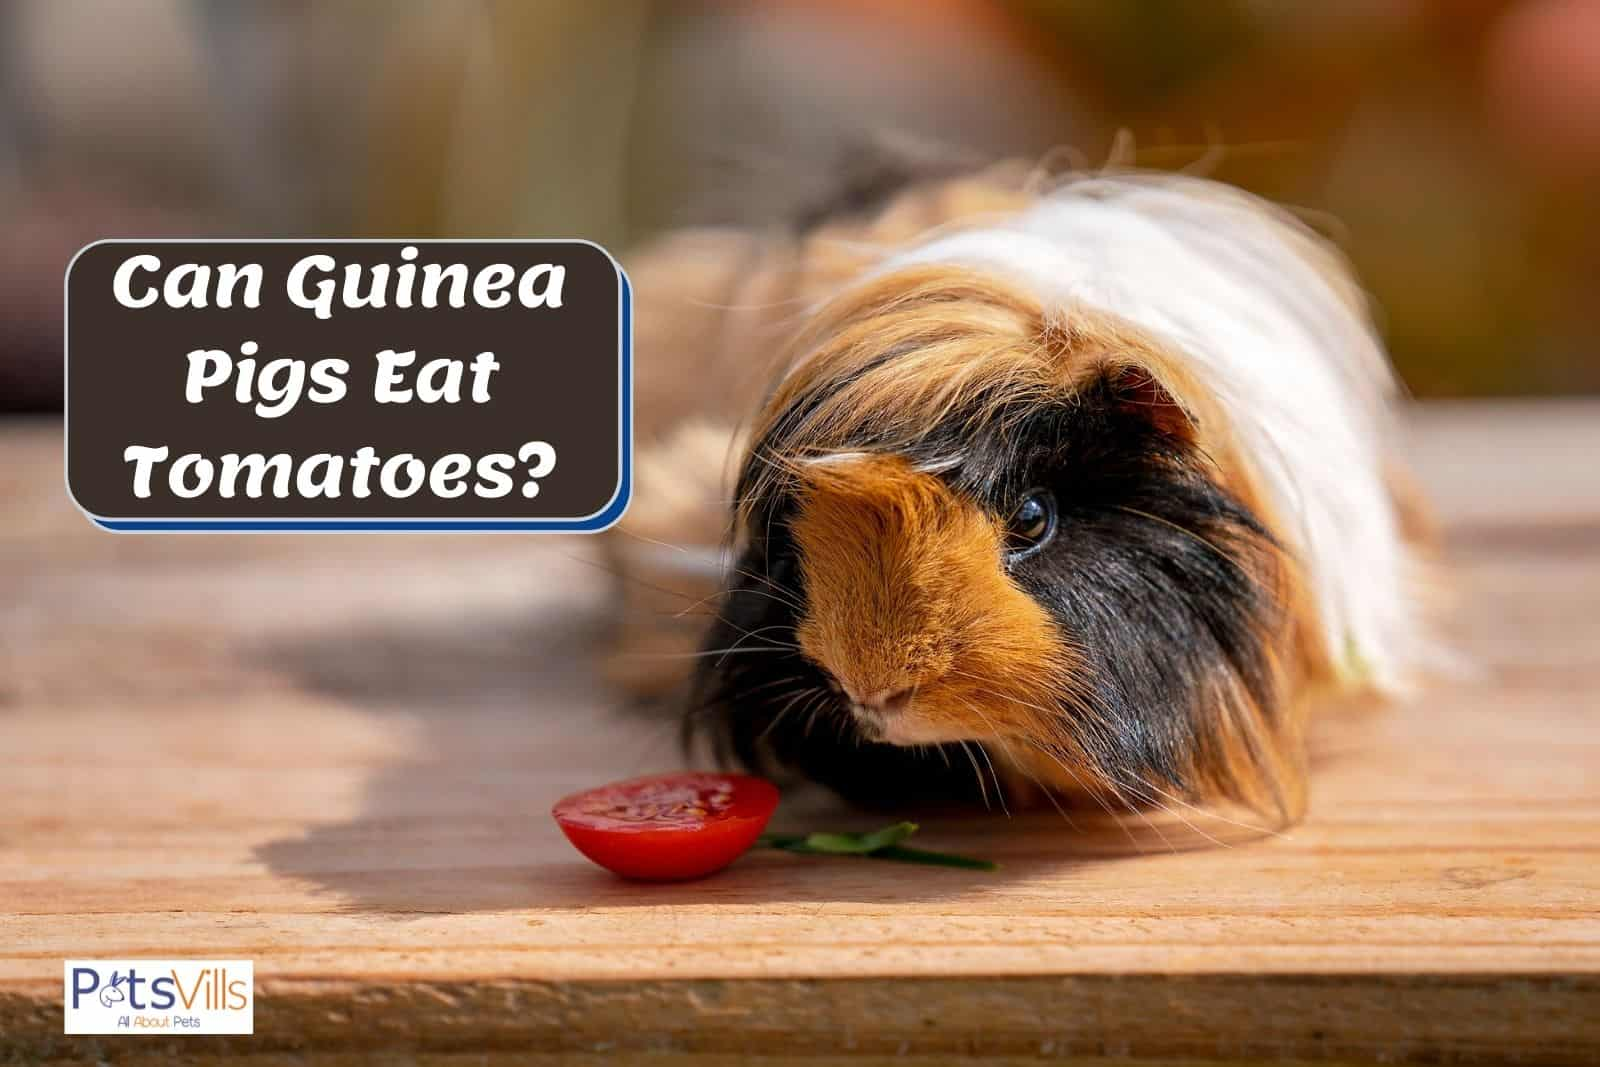 a furry cavy looking at the tomato but can guinea pigs eat tomatoes?